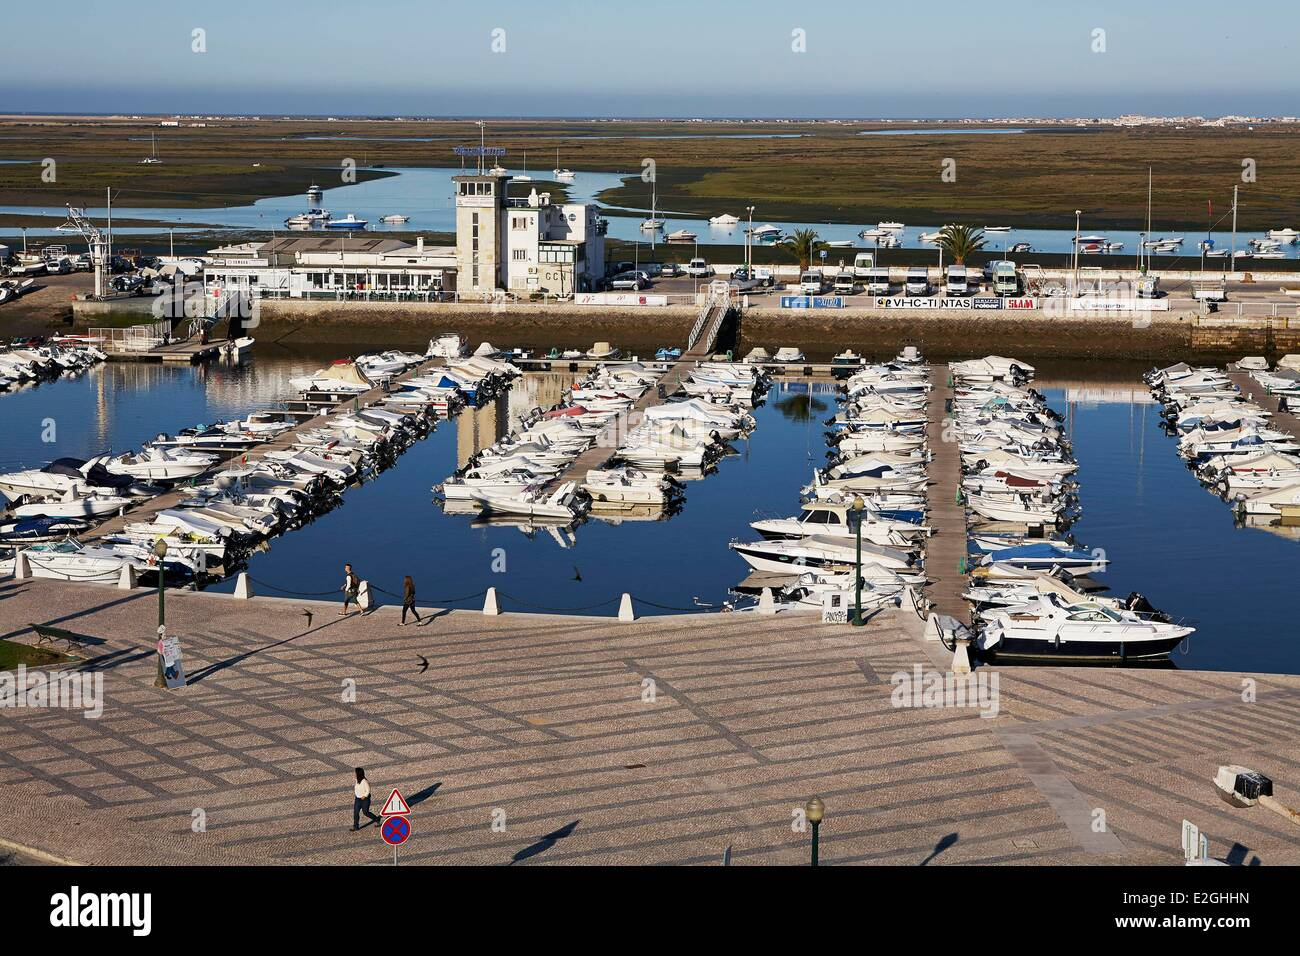 Portugal Algarve Faro Marina Natural Park of Ria Formosa and Gulf of Cadiz in background - Stock Image